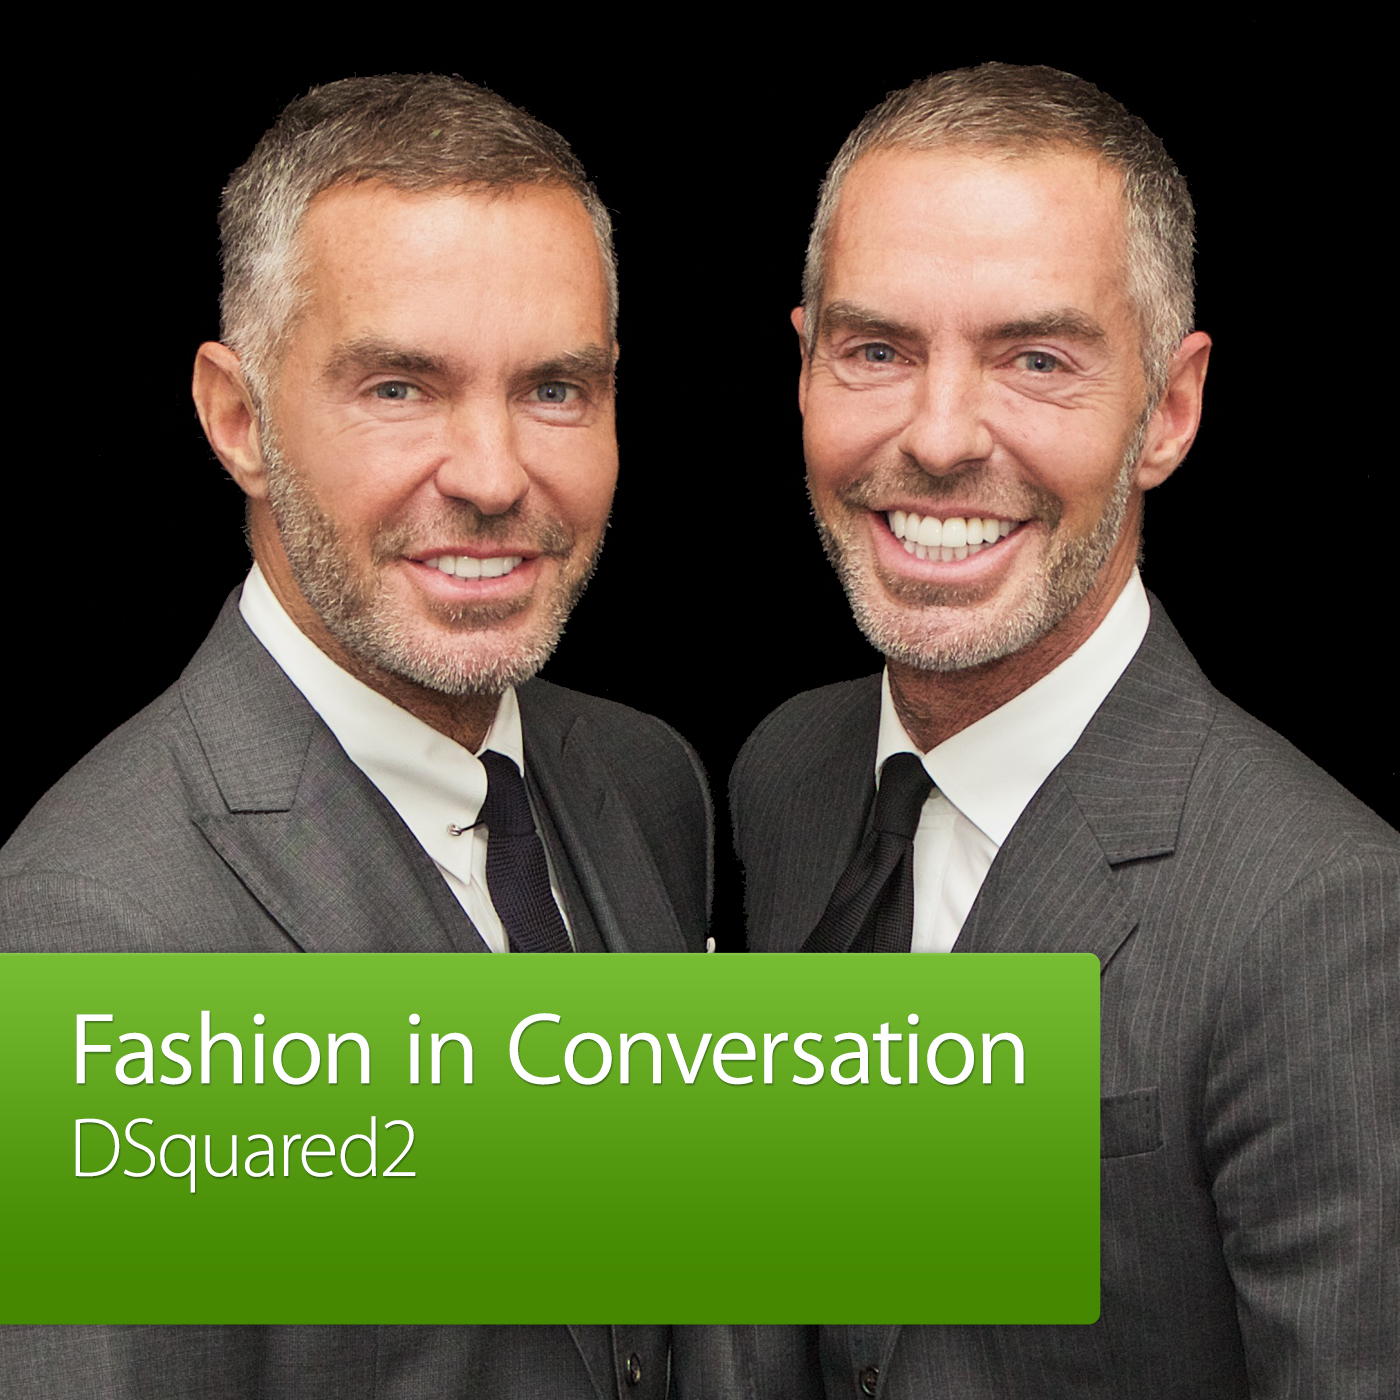 DSQUARED2: Fashion in Conversation